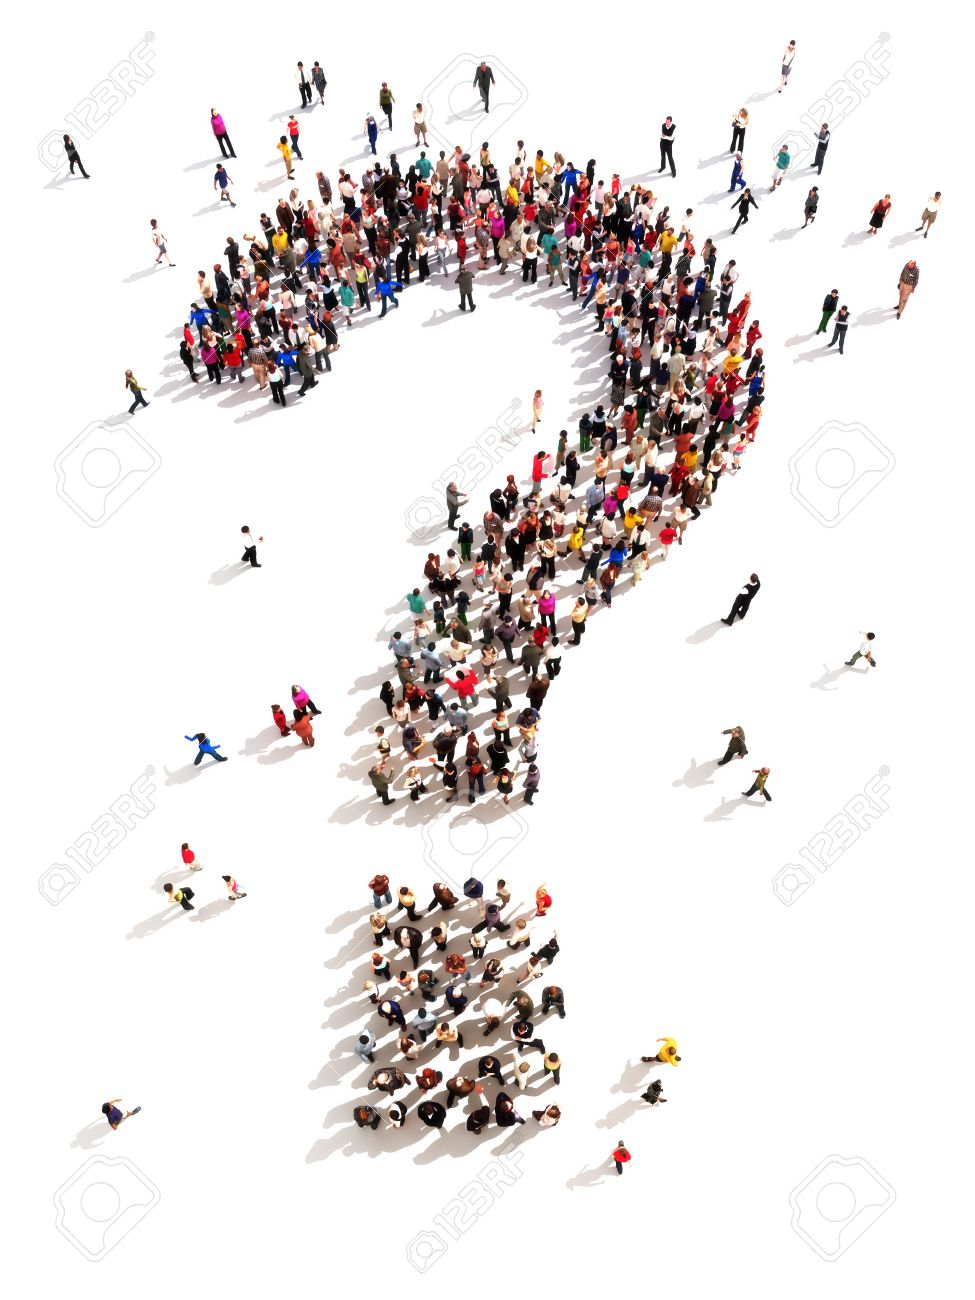 Large group of people with questions, thinking concept, or quest for answers on a white - 29301515